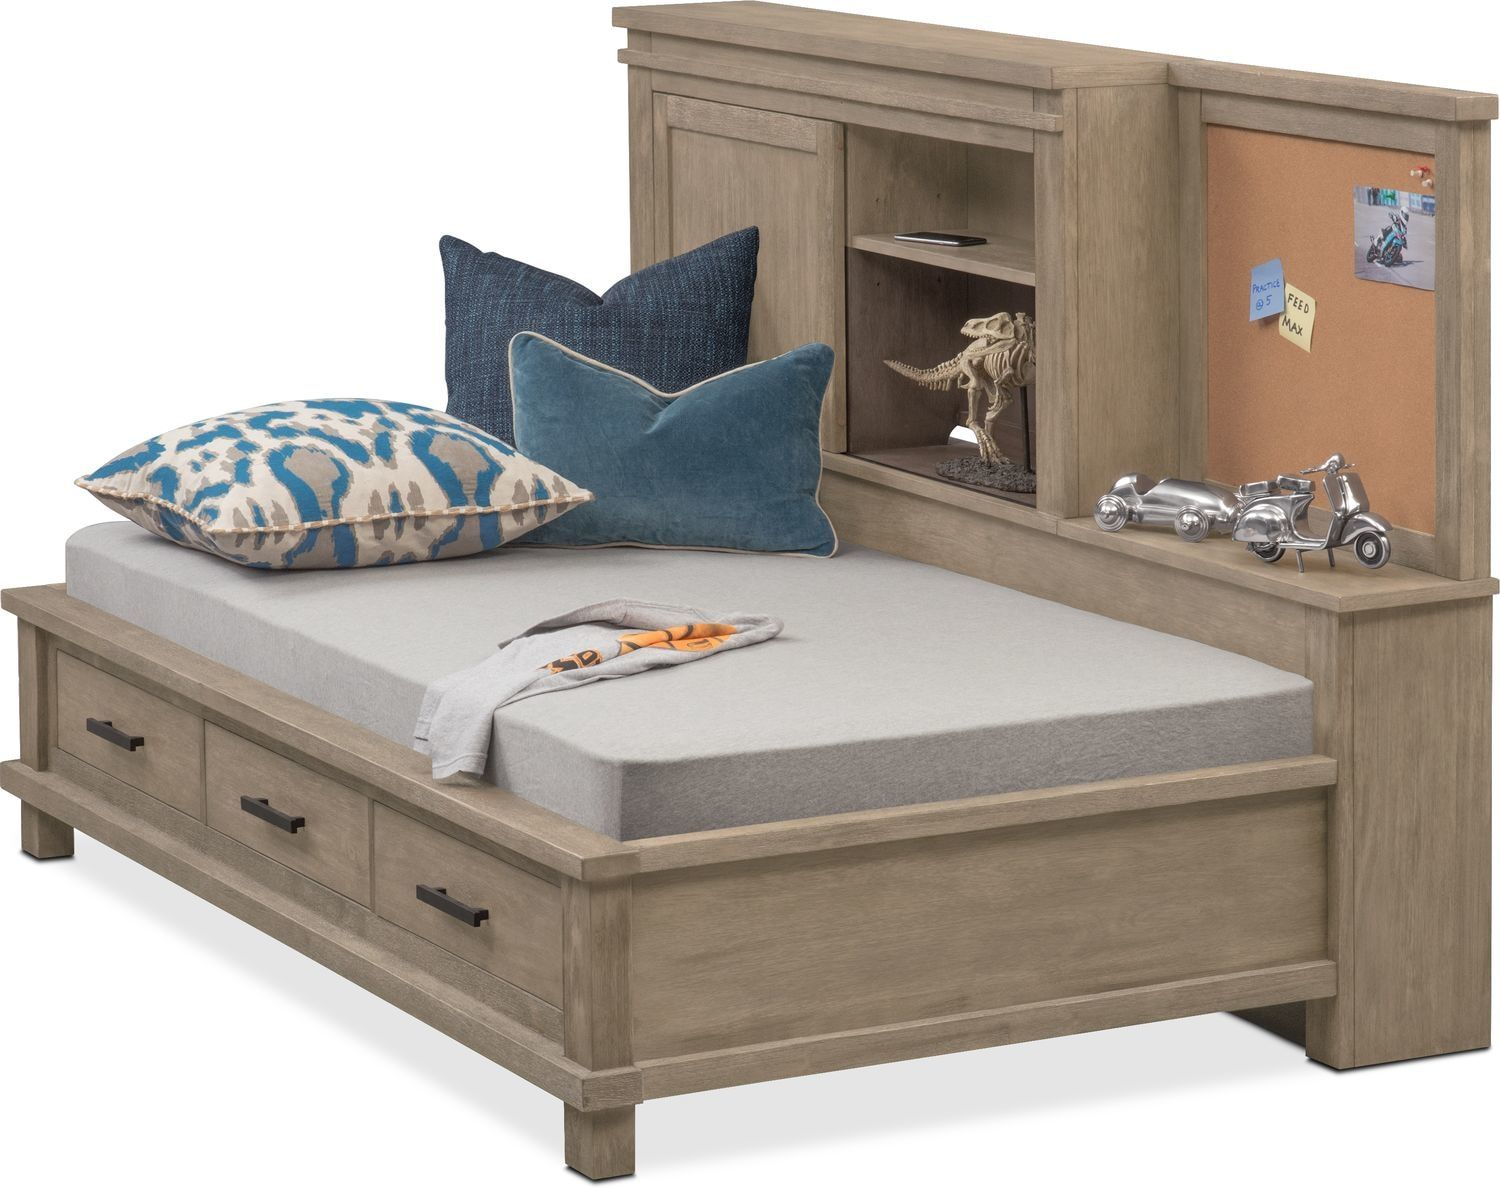 Tribeca Lounge Storage Bed Value City Furniture Daybed With Storage City Furniture